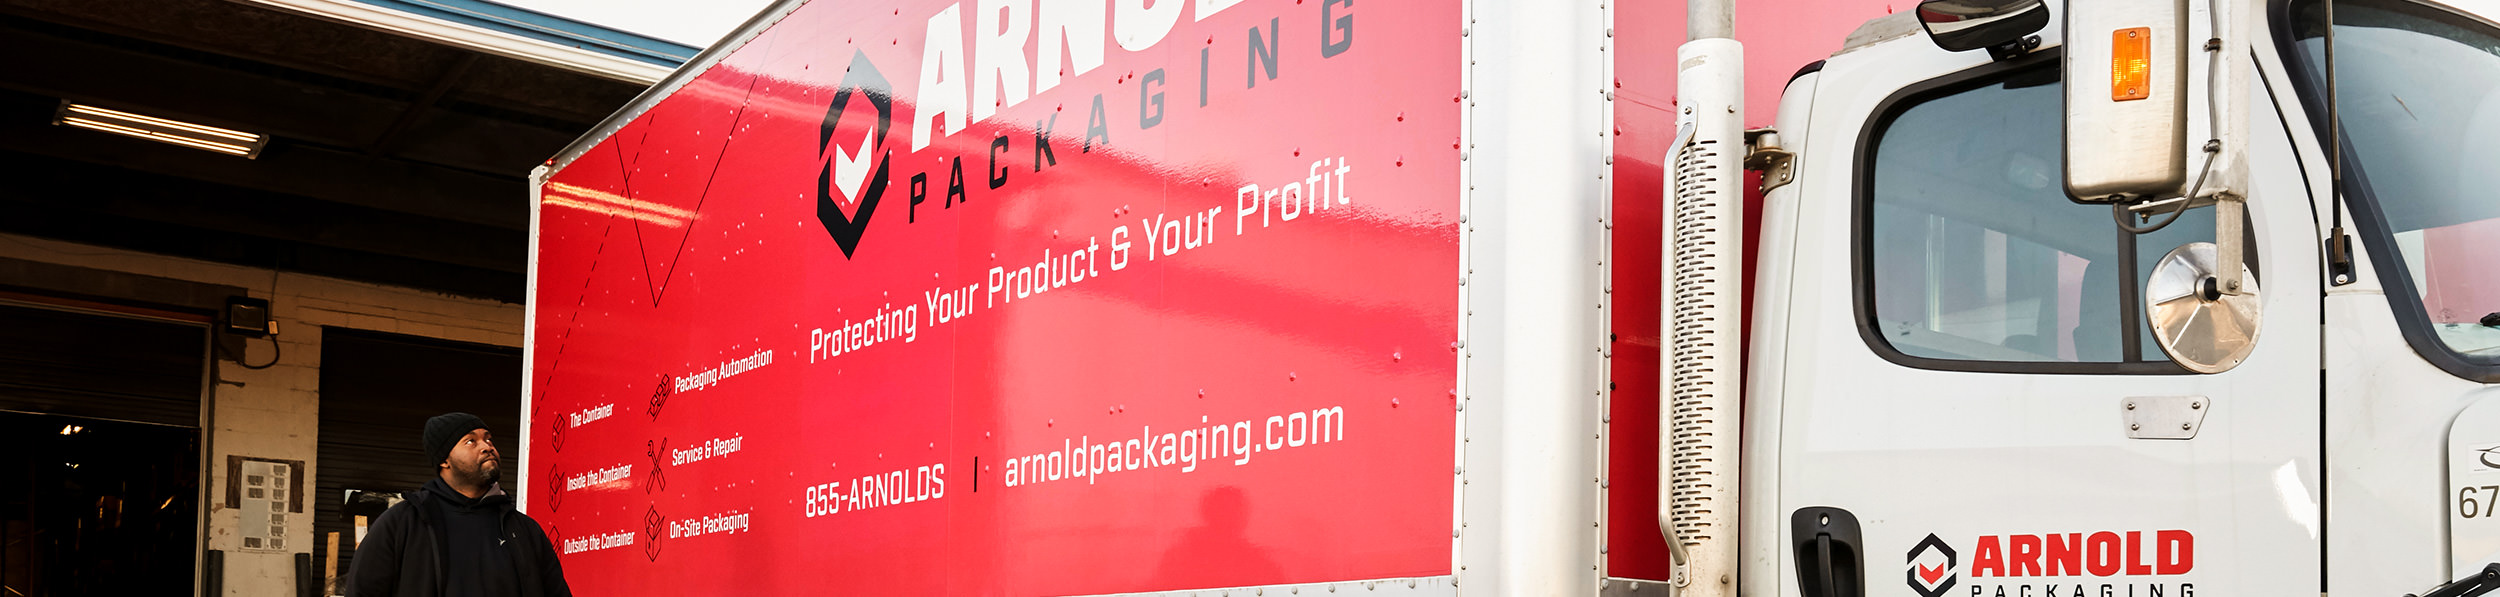 Arnold Packaging - World Class Packaging